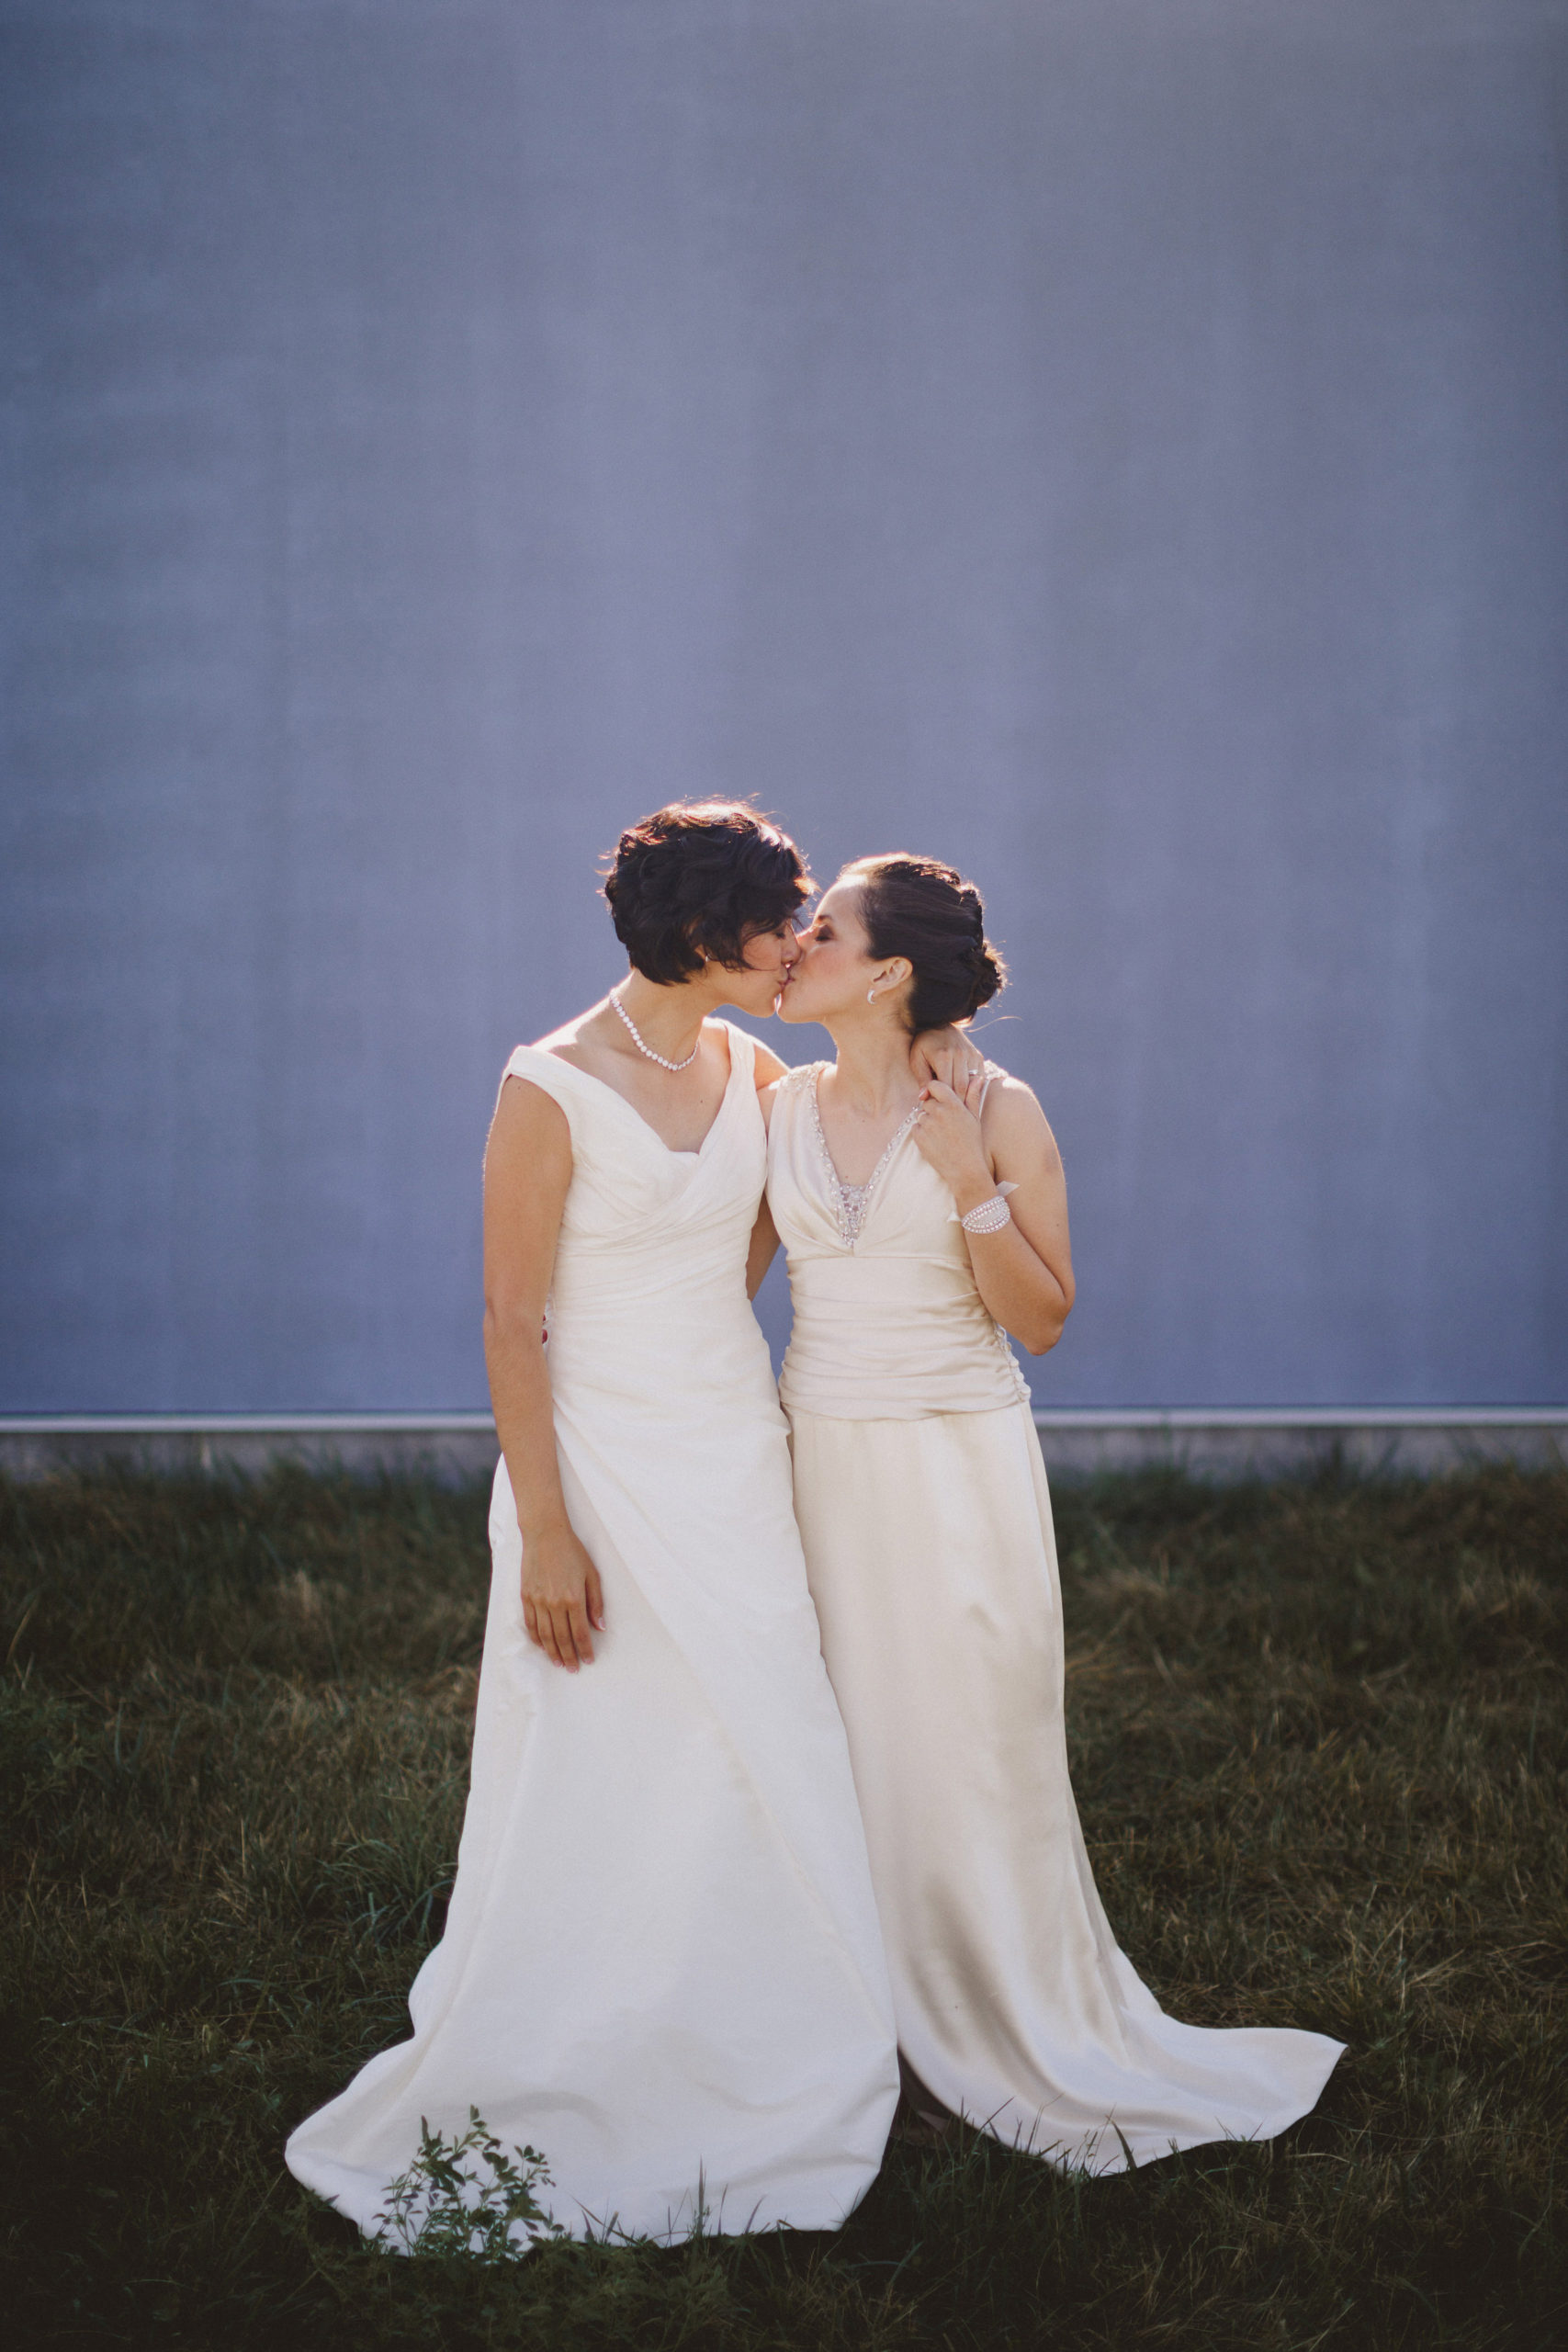 two brides wedding southbook winery niagara lgbtq photographer